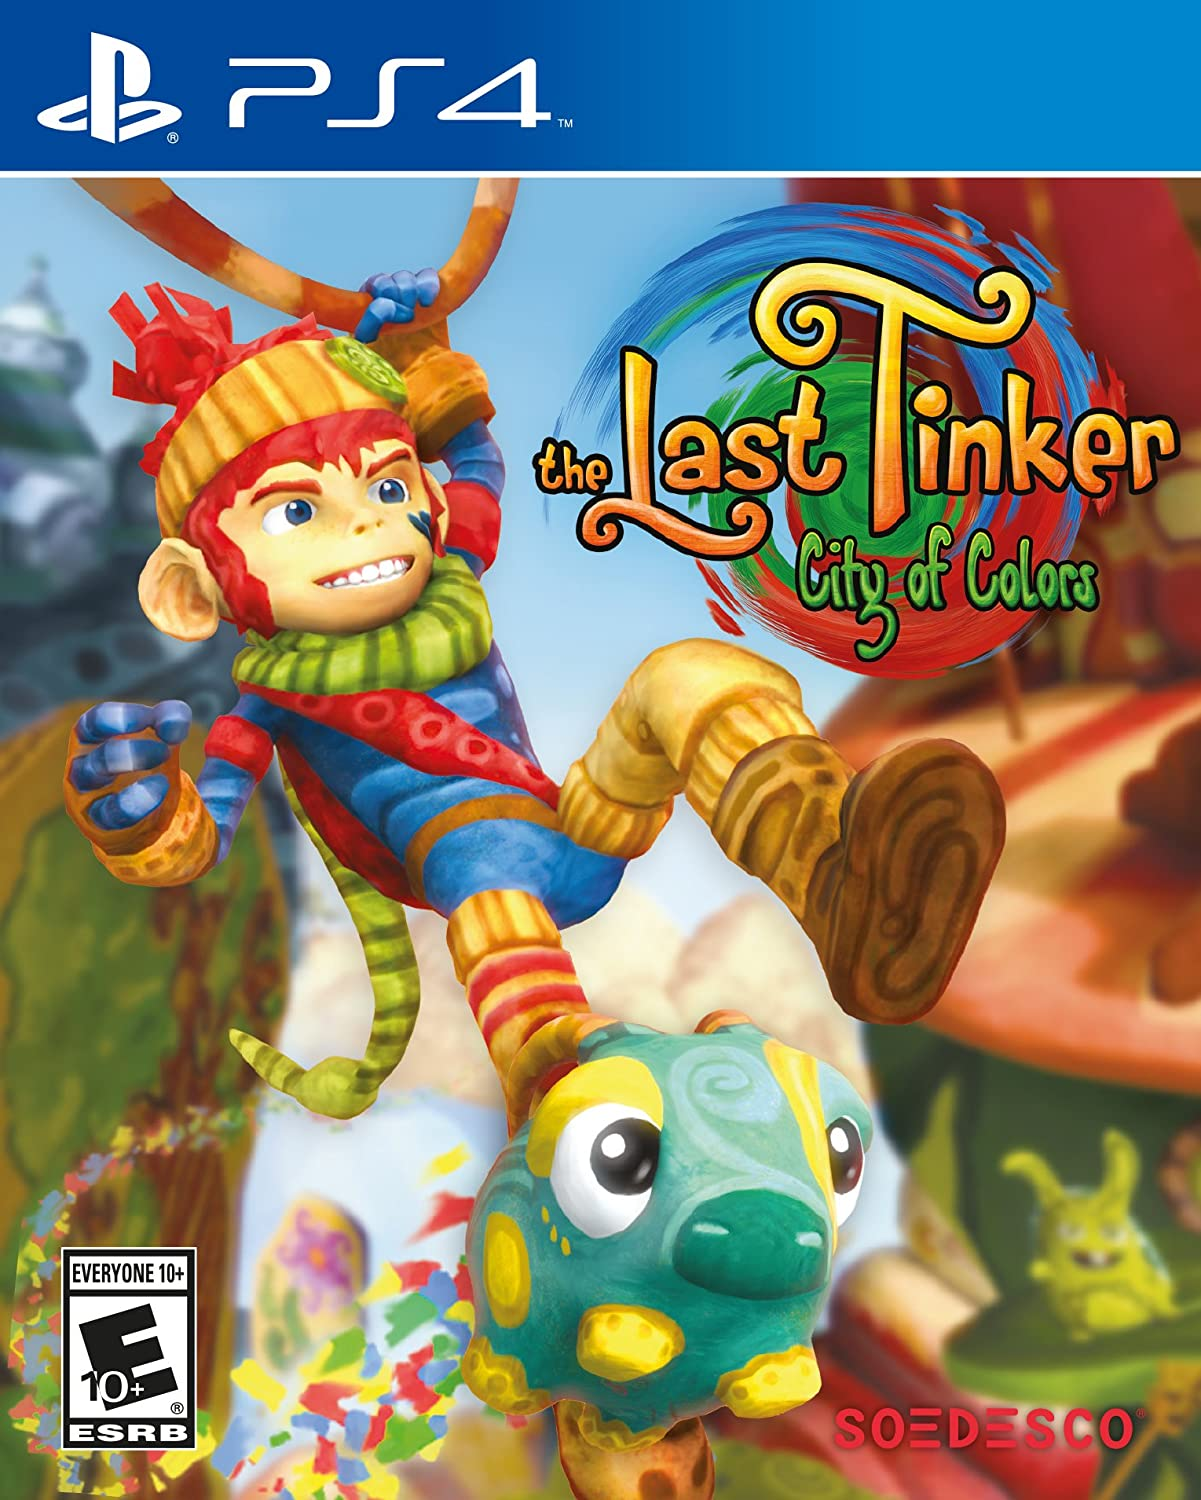 [PS4] The Last Tinker: City of Colors (2015) - Sub ITA